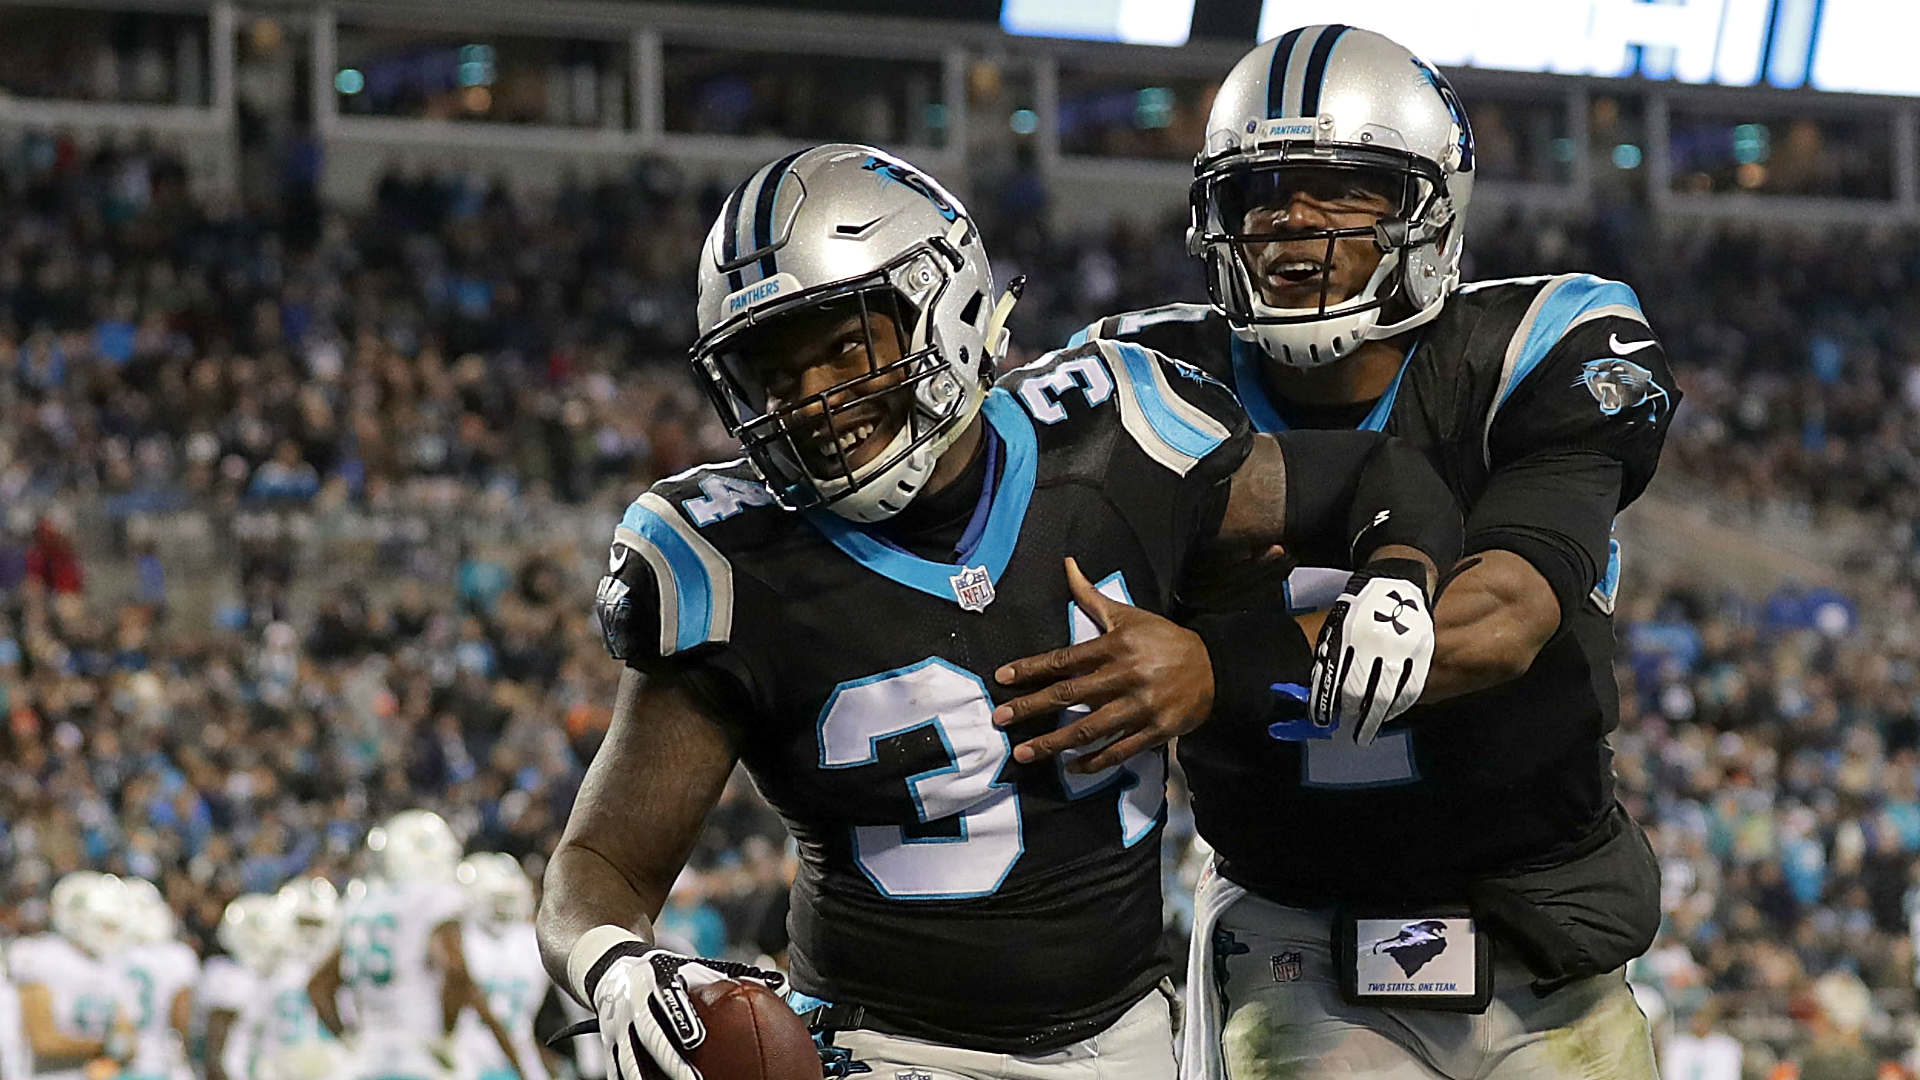 Three takeaways from Panthers' win over Dolphins